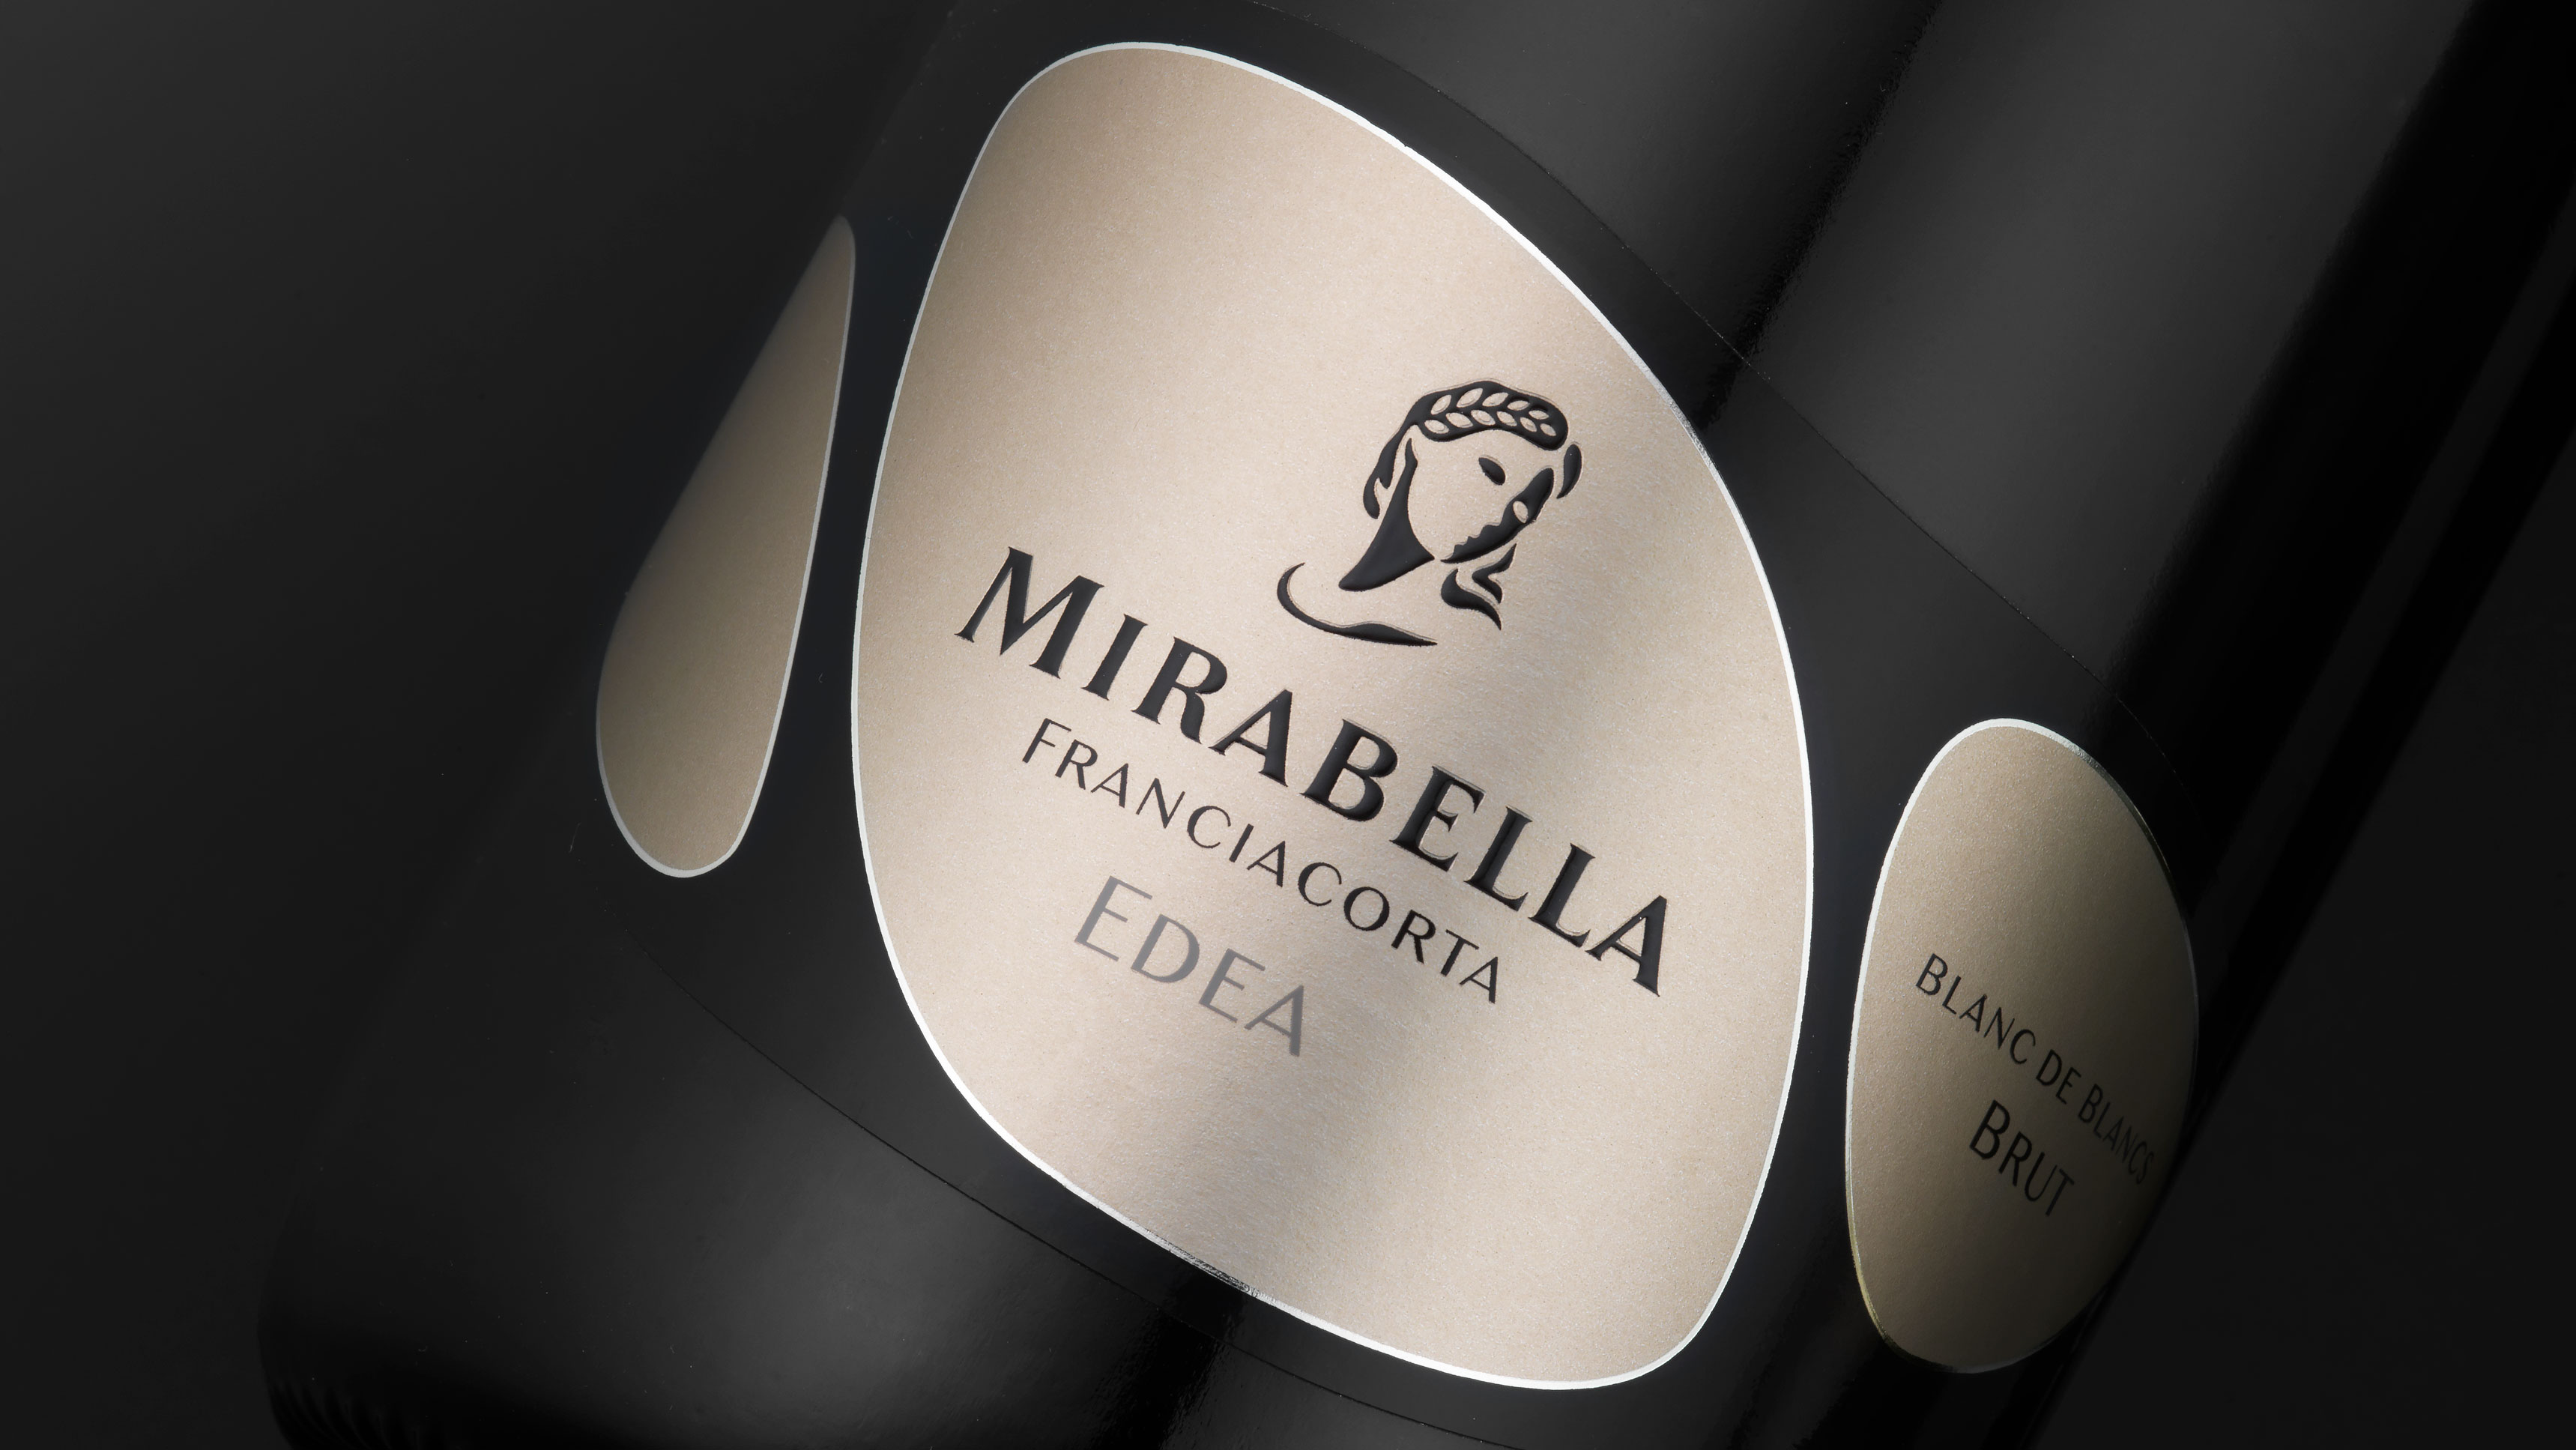 Mirabella close up brand